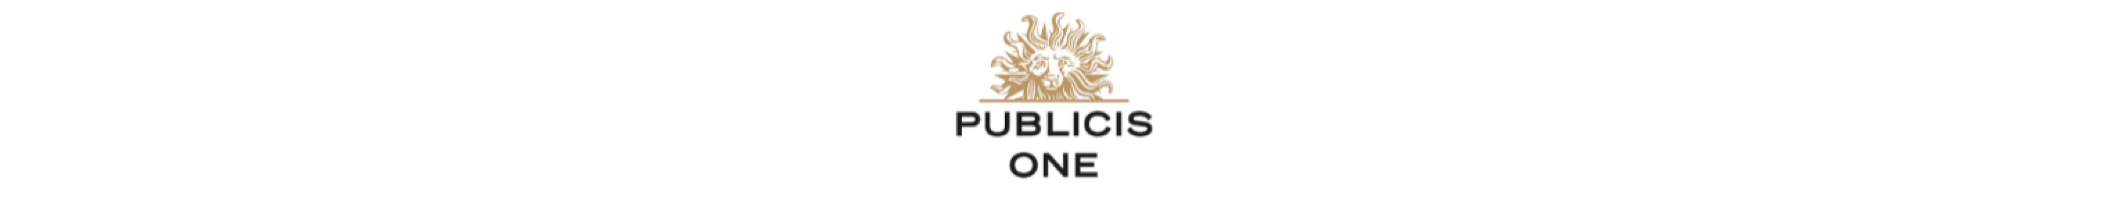 Publicis Groupe: First Half 2018 Results | Publicis Groupe